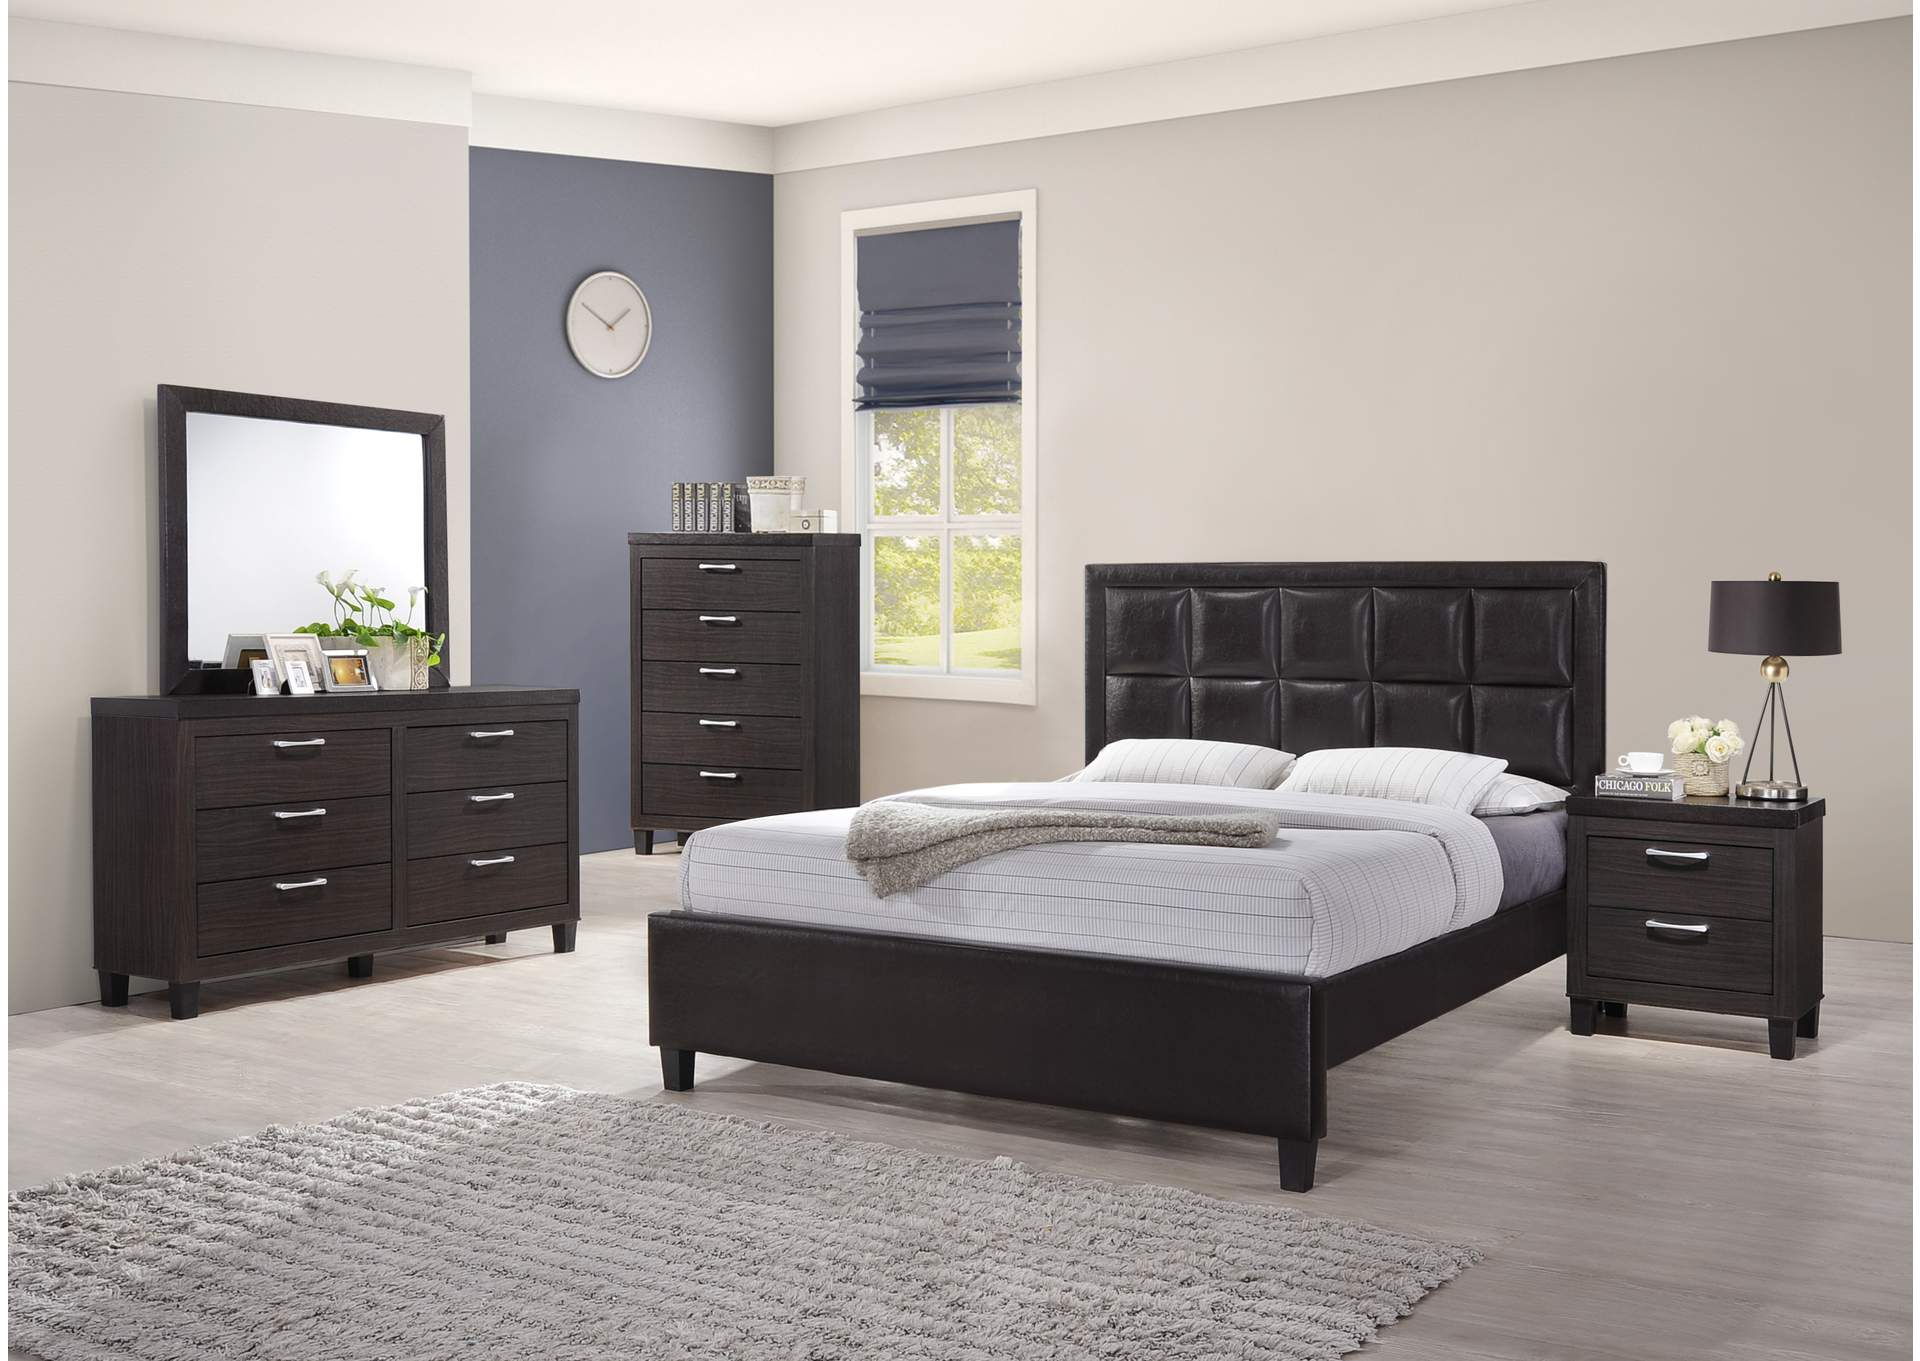 Dark Grey Panel Queen 5 Piece Bedroom Set W/ Nightstand, Chest, Dresser & Mirror,Global Trading